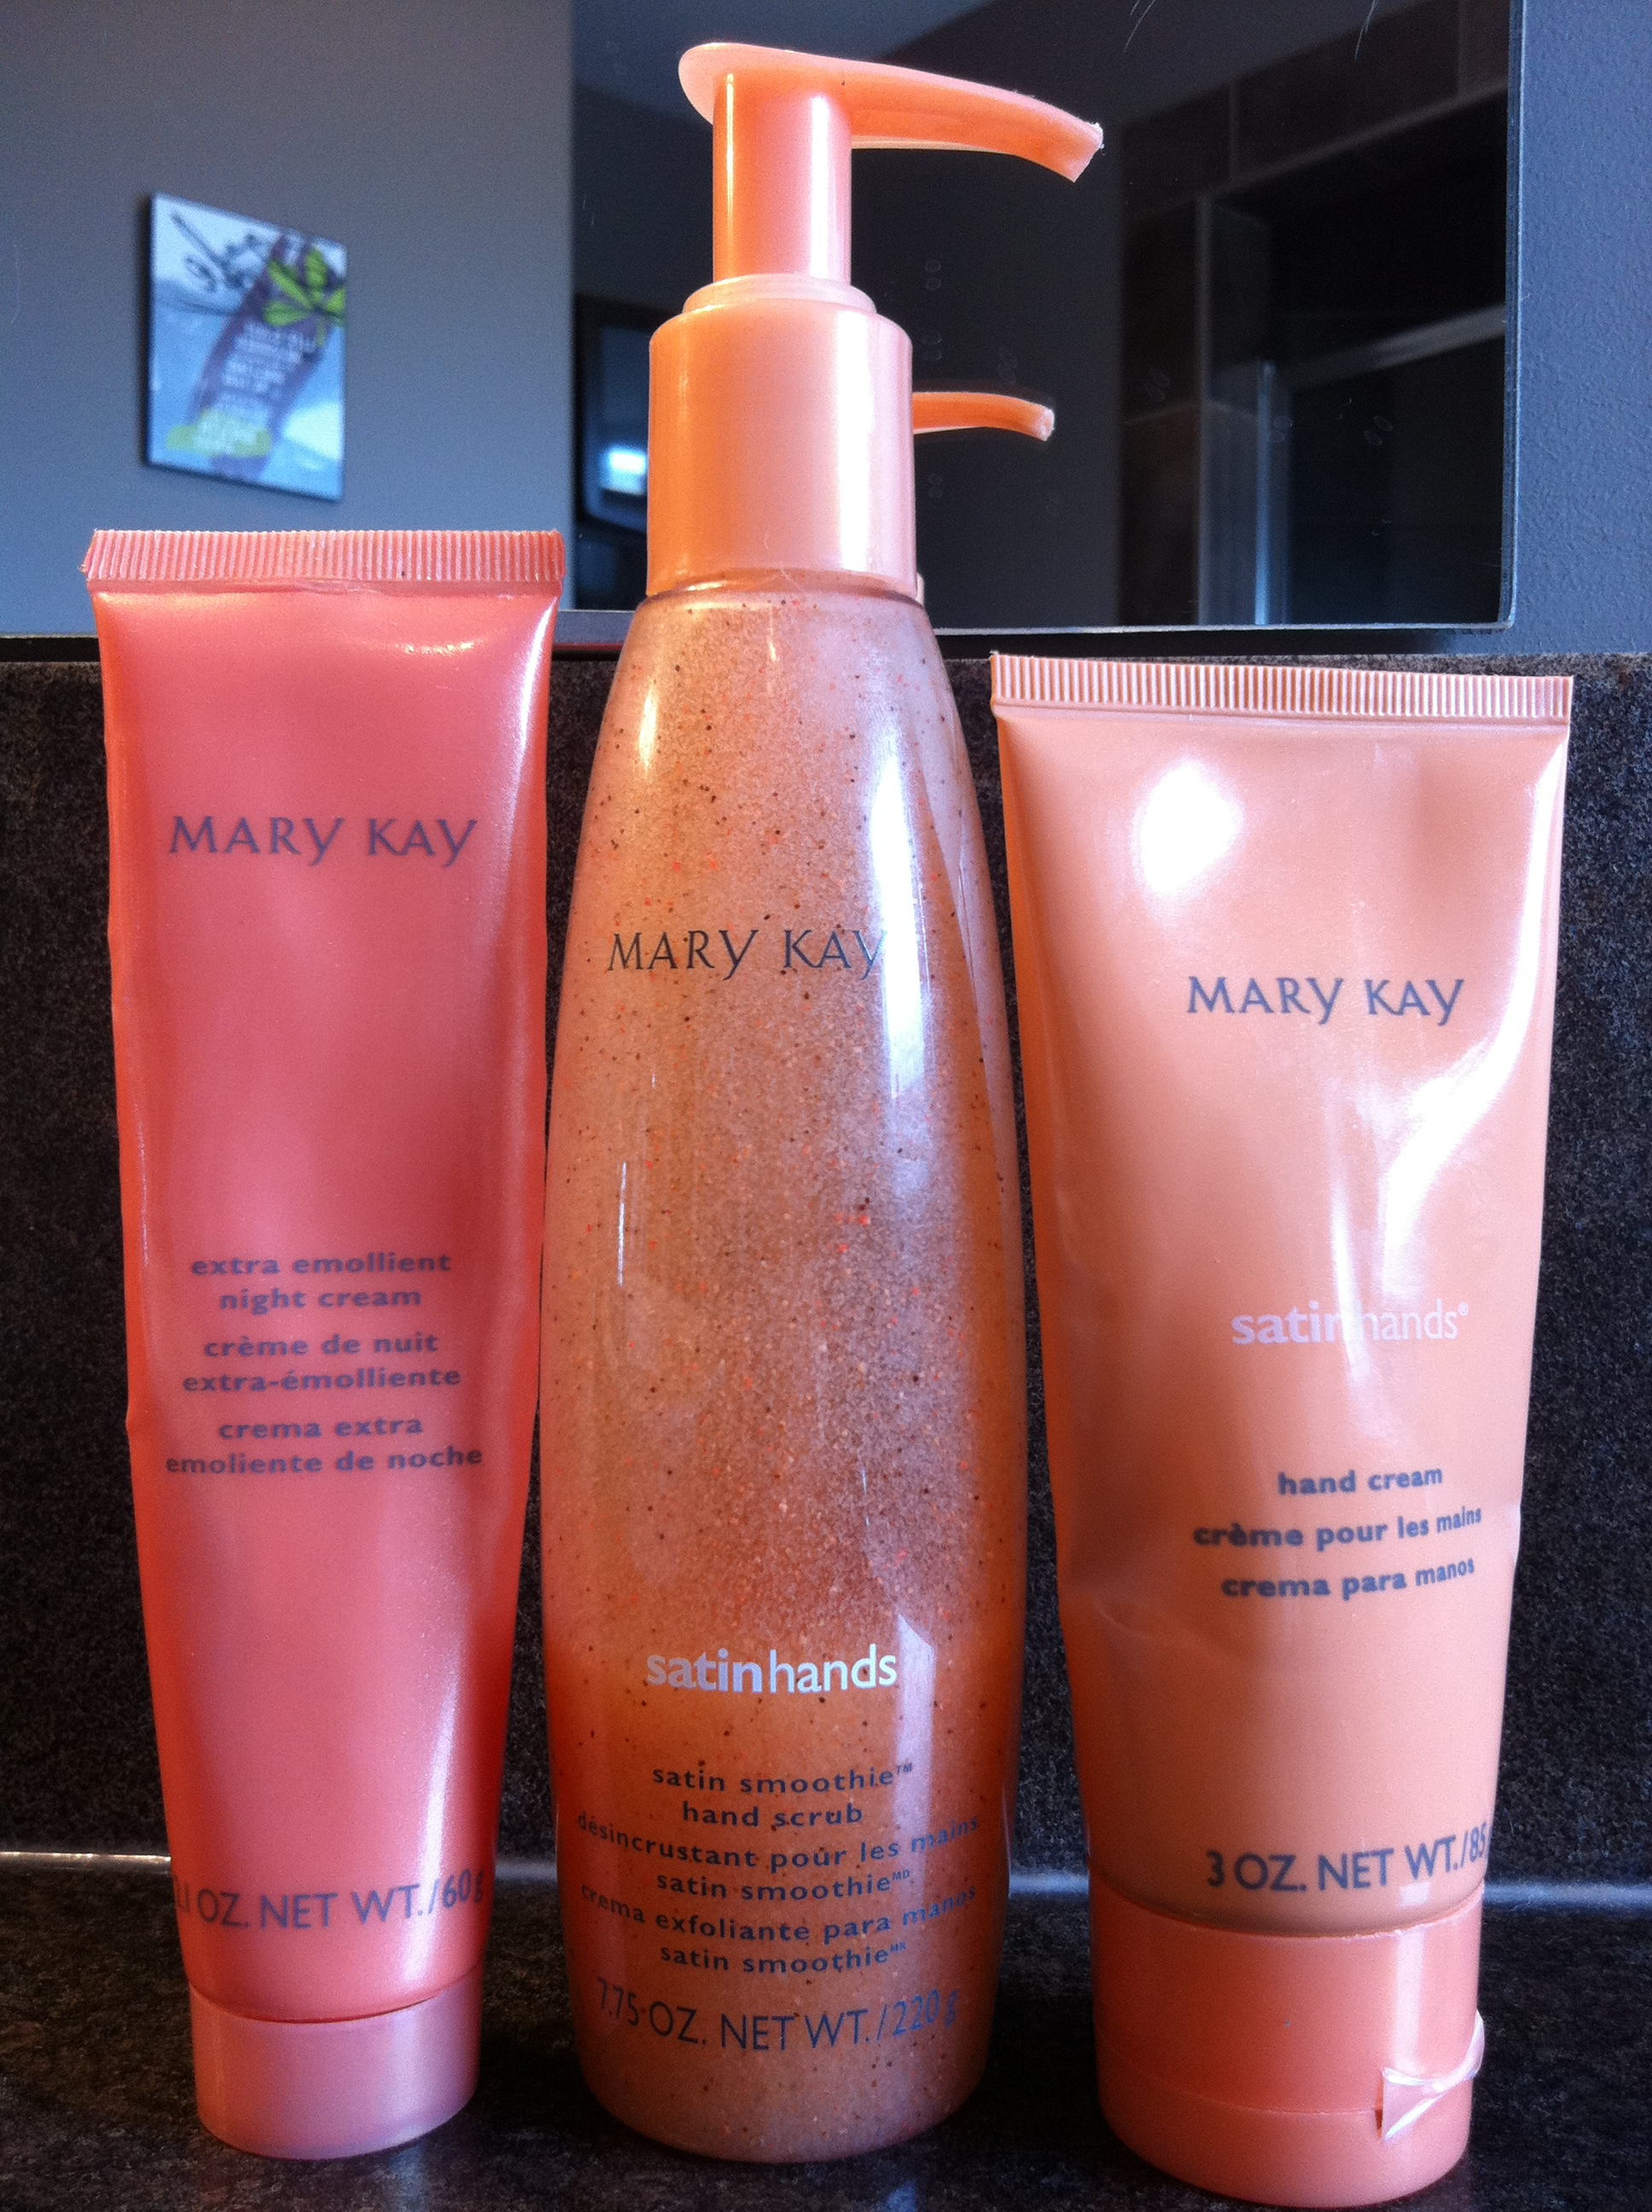 Mary Kay Satin Hands Set Reviews In Body Lotions Creams